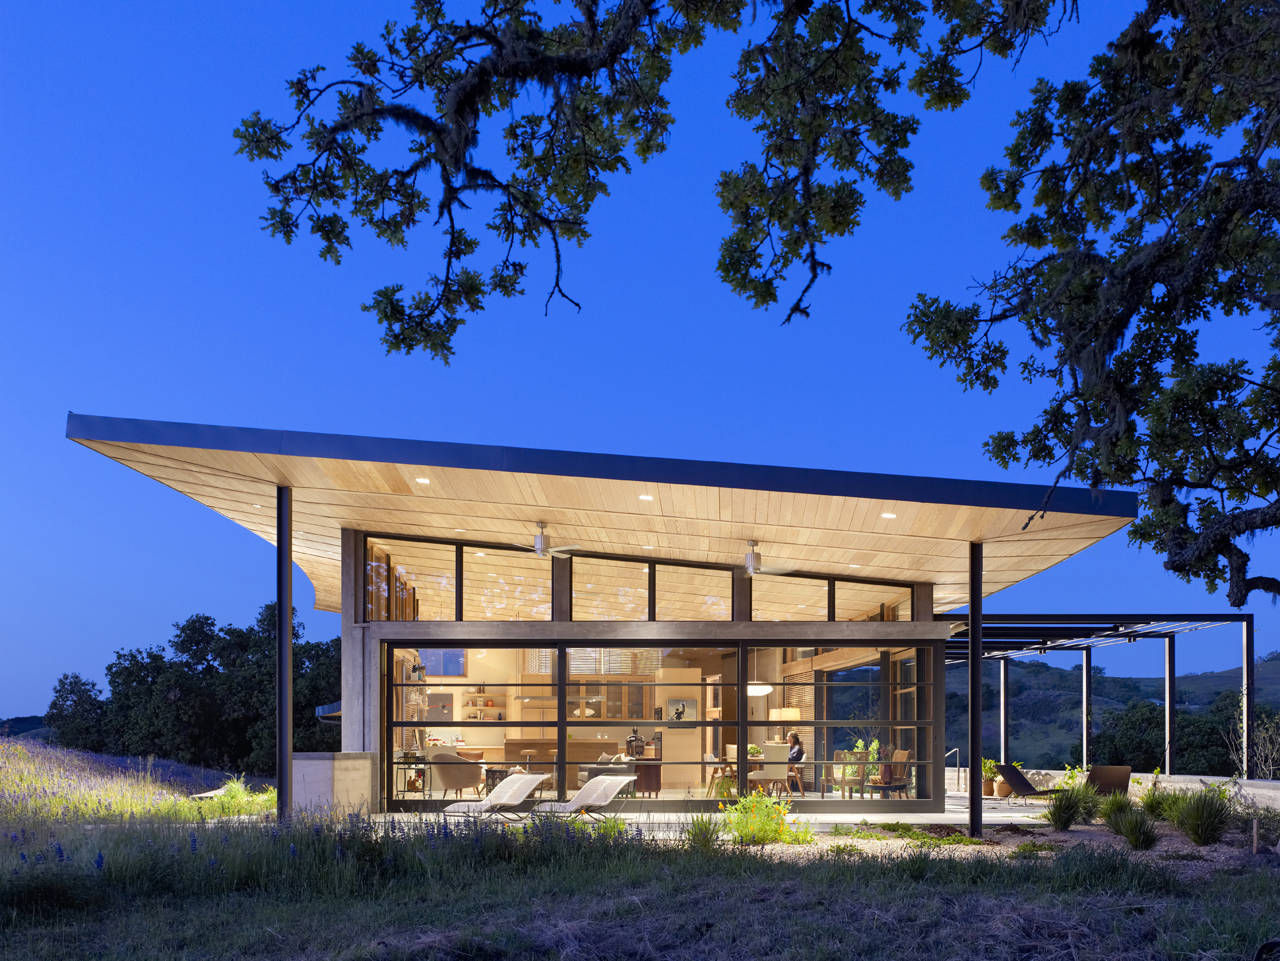 Caterpillar House In Carmel California By Feldman Architecture on lean to sheds ireland